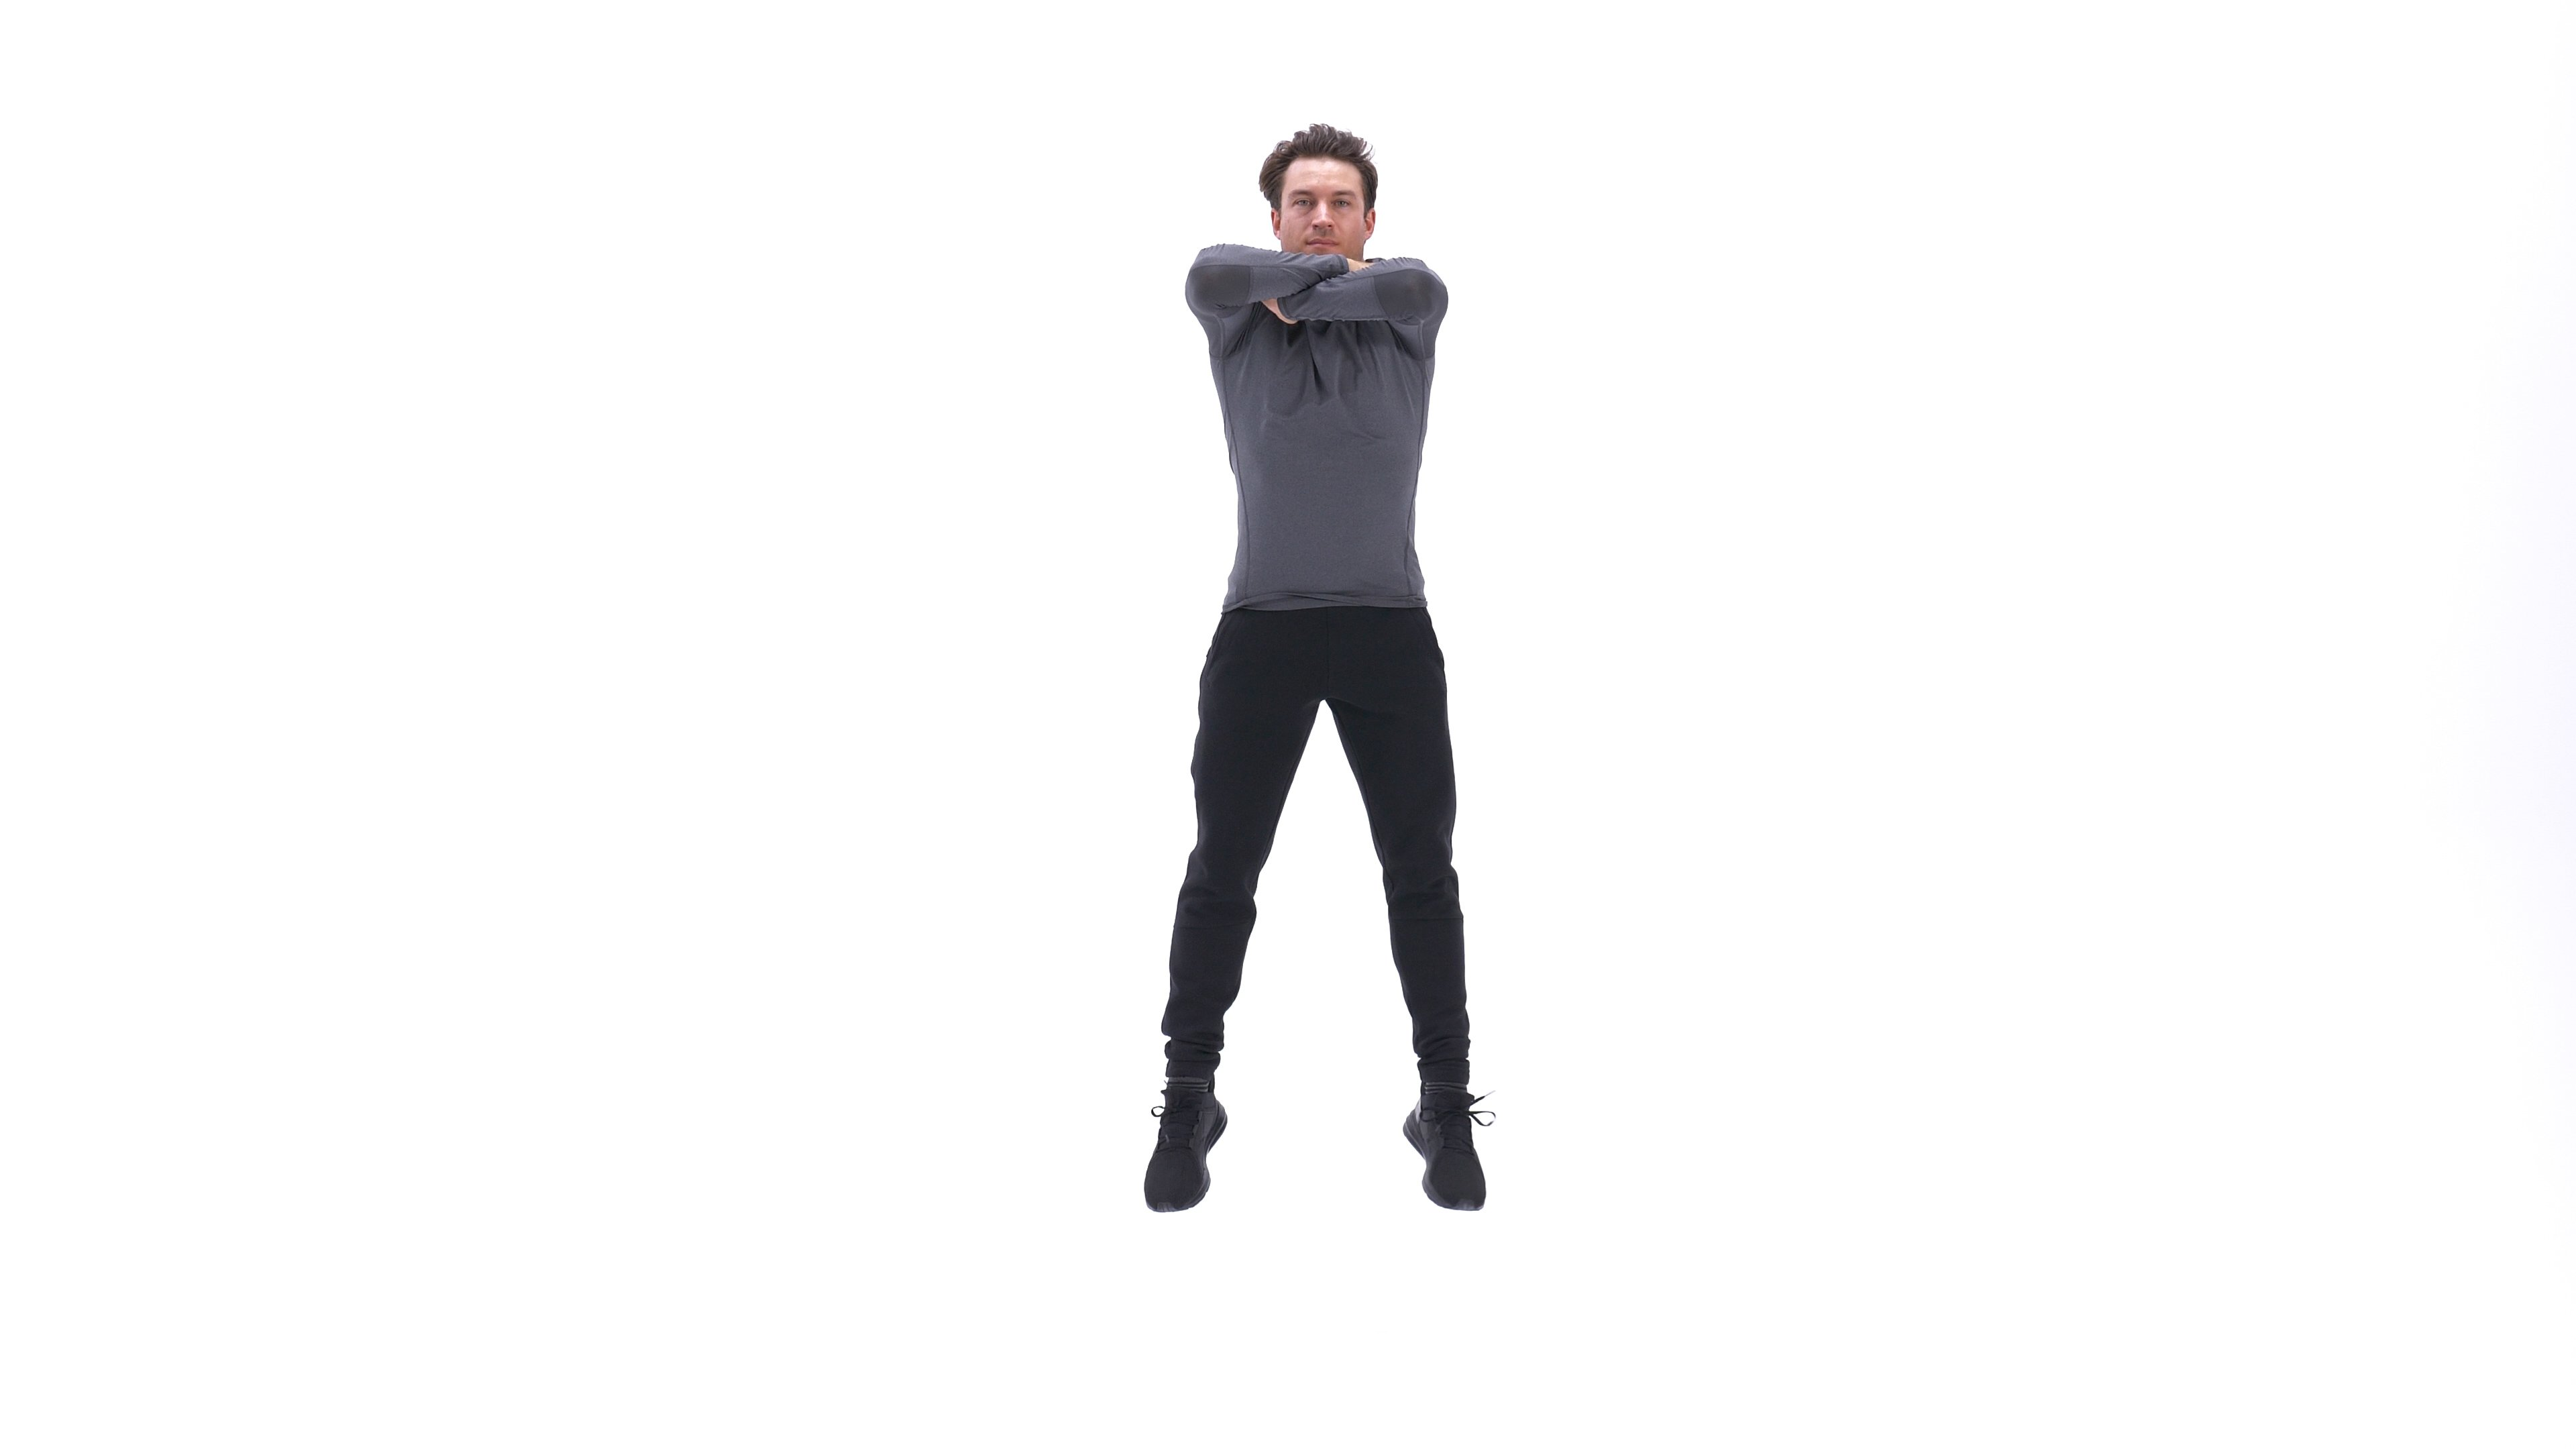 Arms-crossed jump squat image